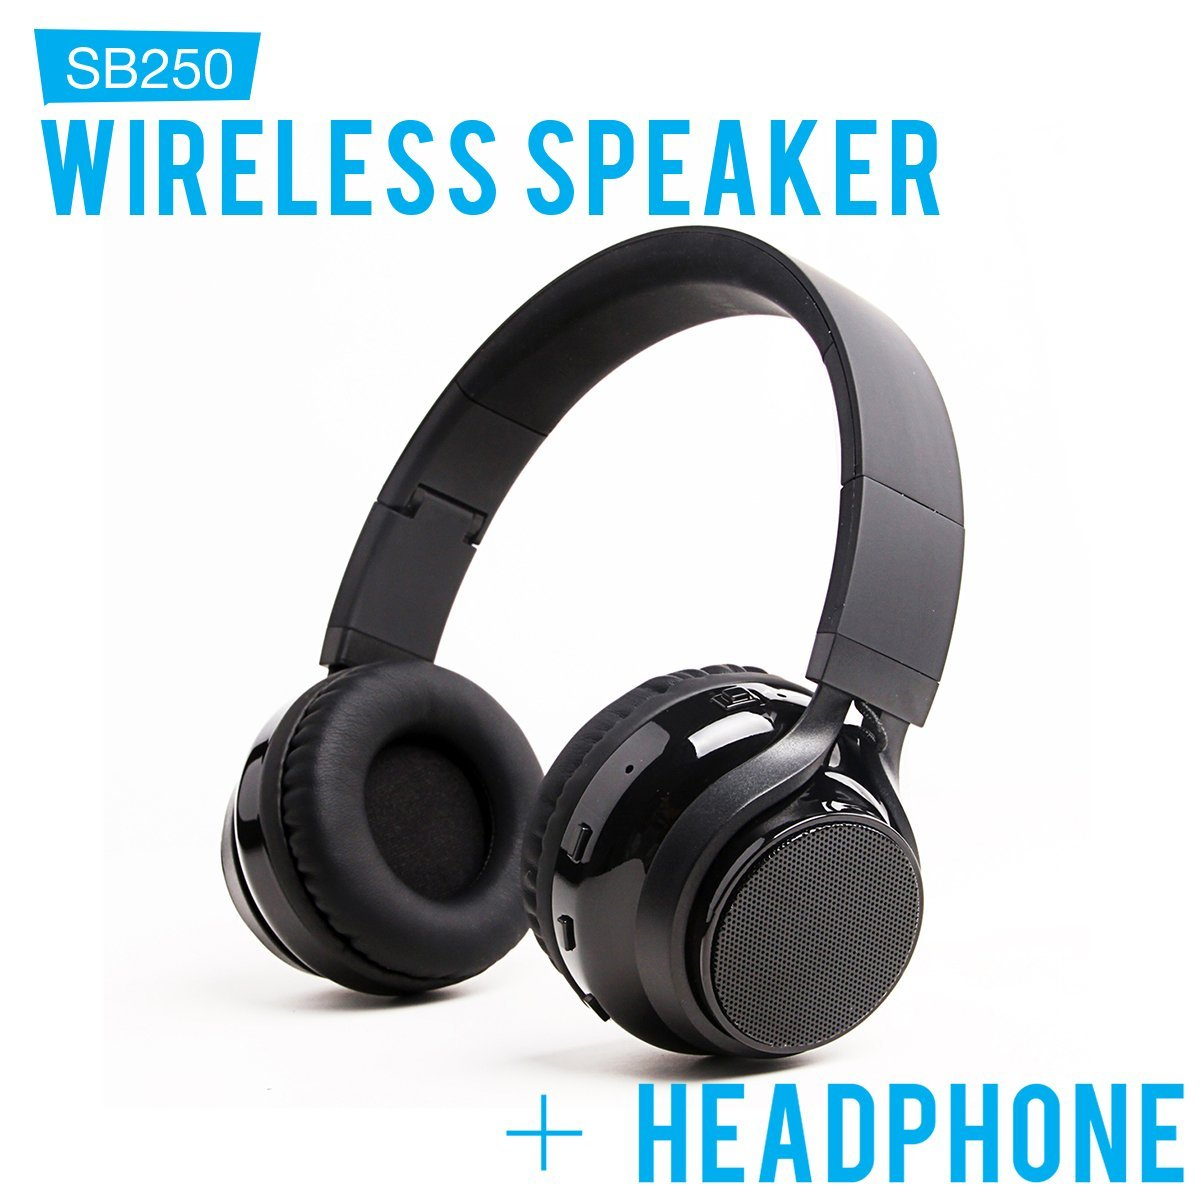 SoundBot SB250 Sou-8288 Bluetooth 3.0 Headset + Speaker